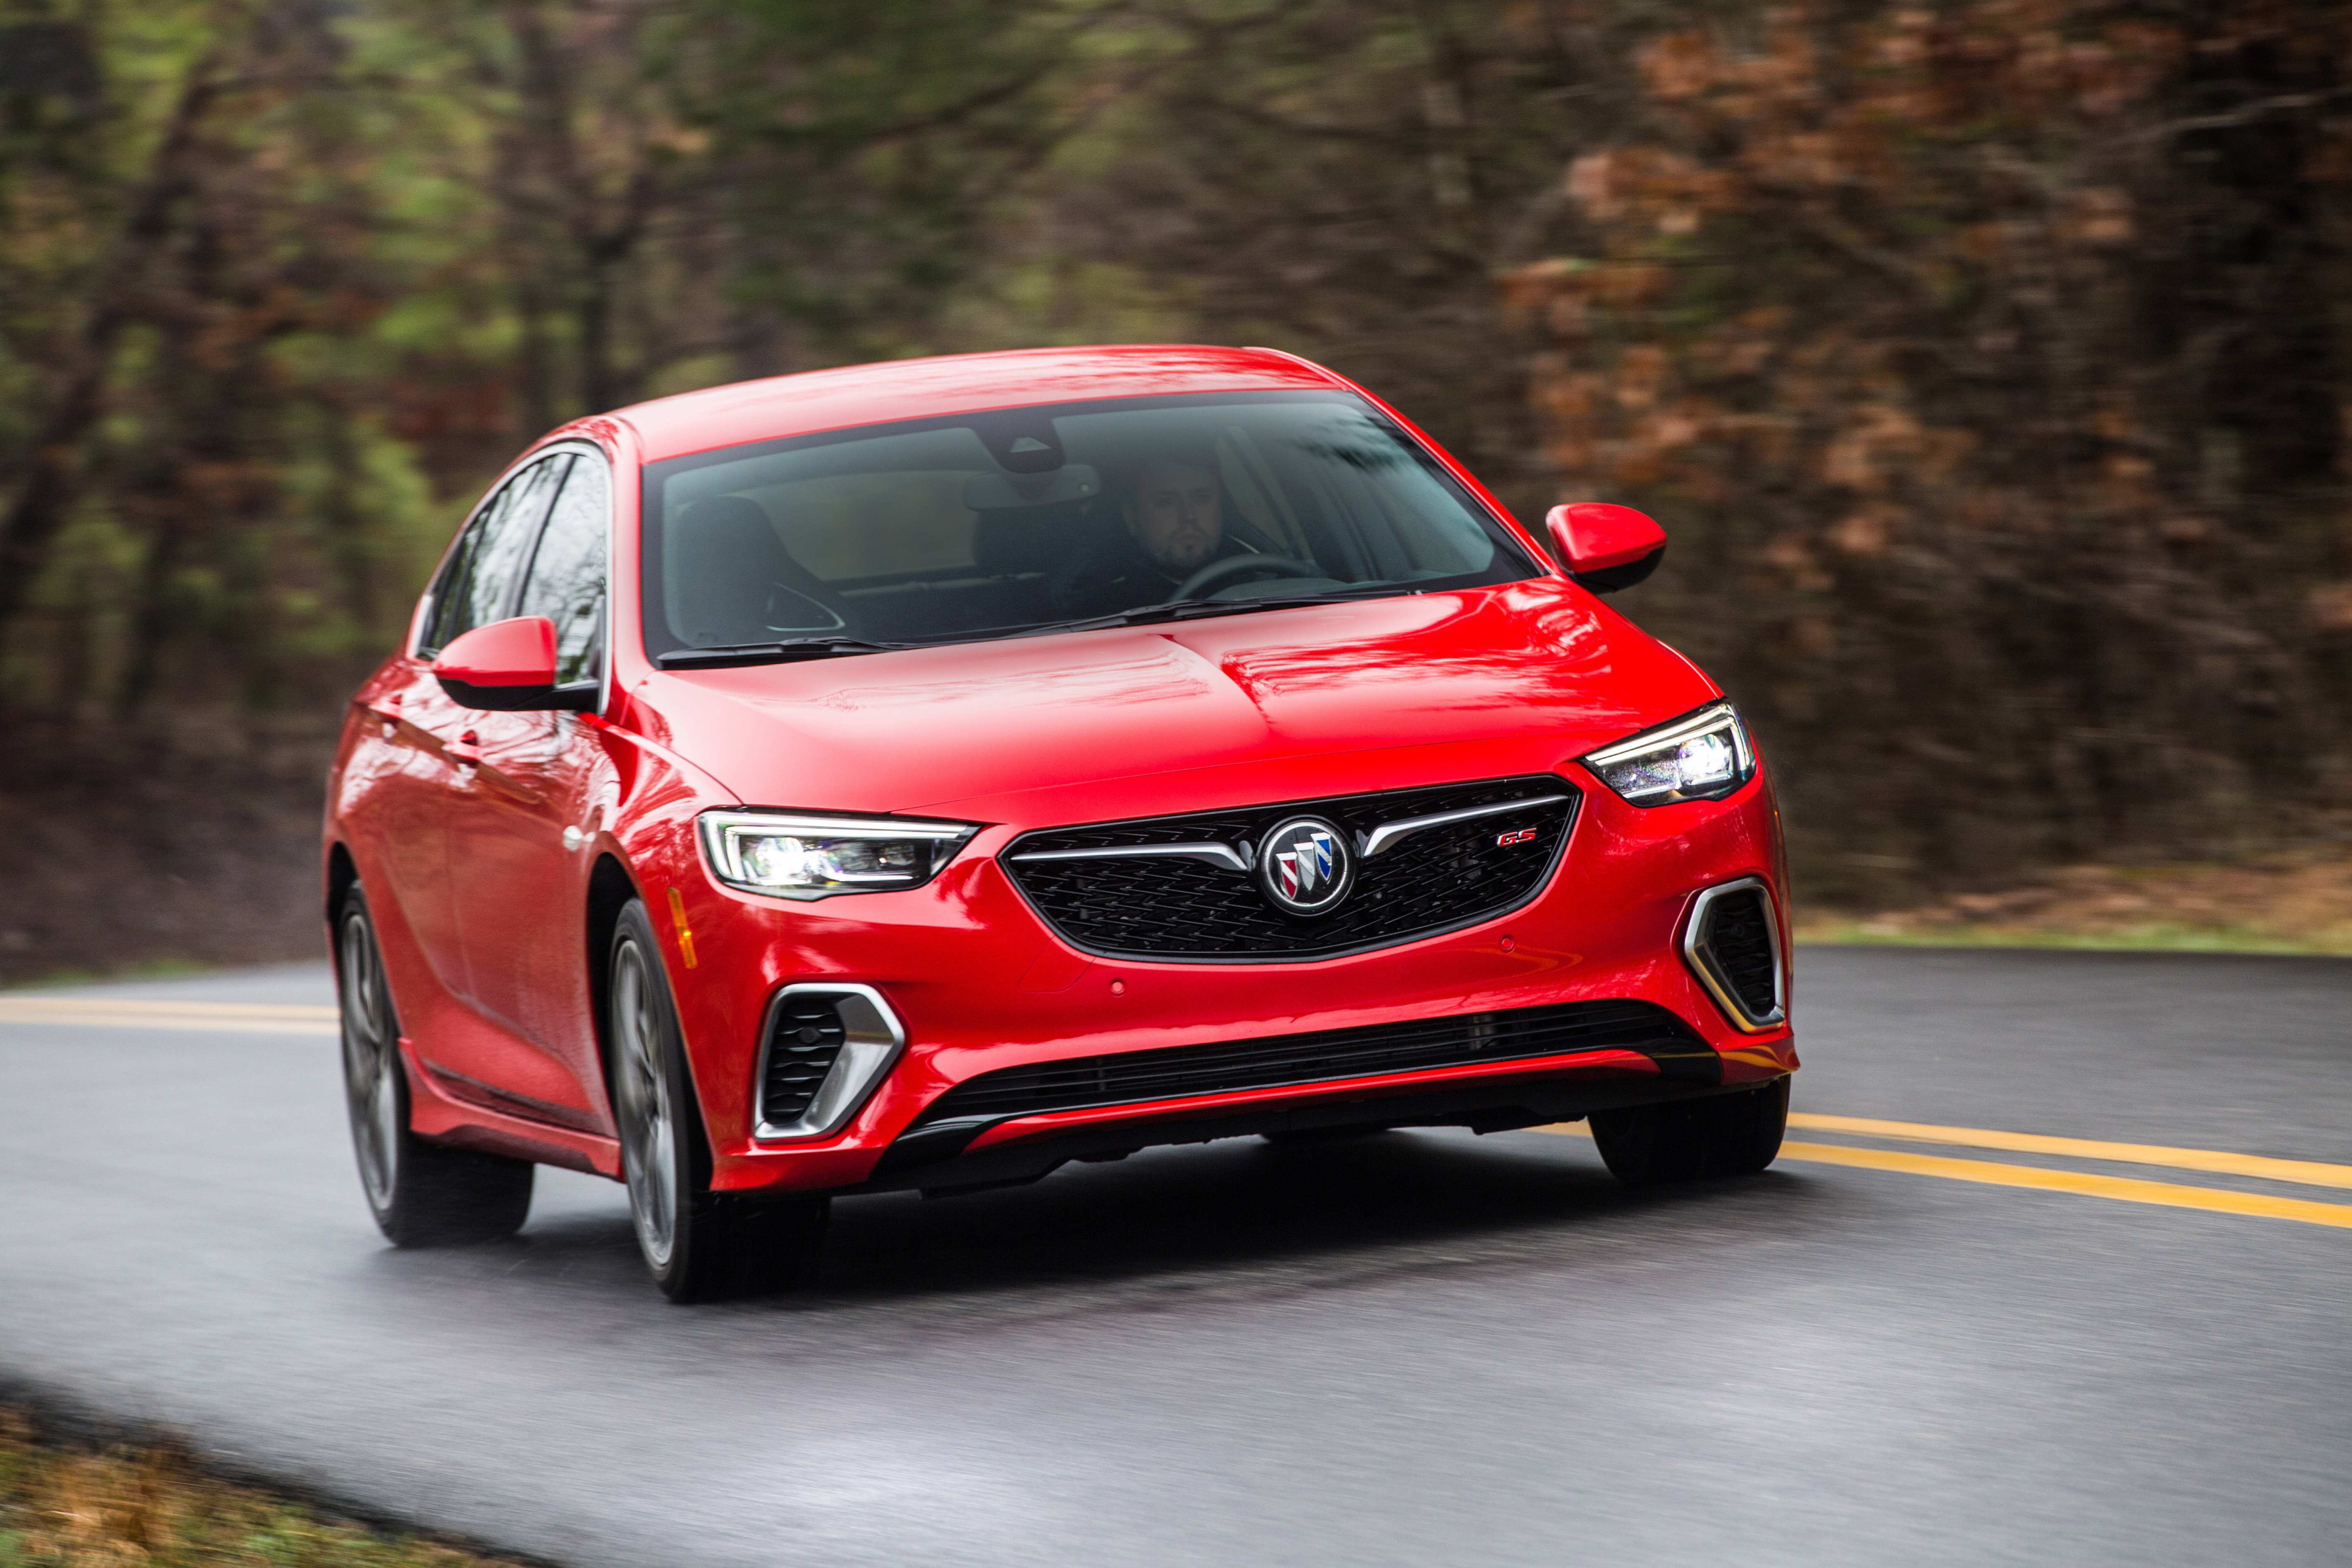 22 Concept of New 2019 Buick Regal Hatchback Concept Redesign And Review Model by New 2019 Buick Regal Hatchback Concept Redesign And Review